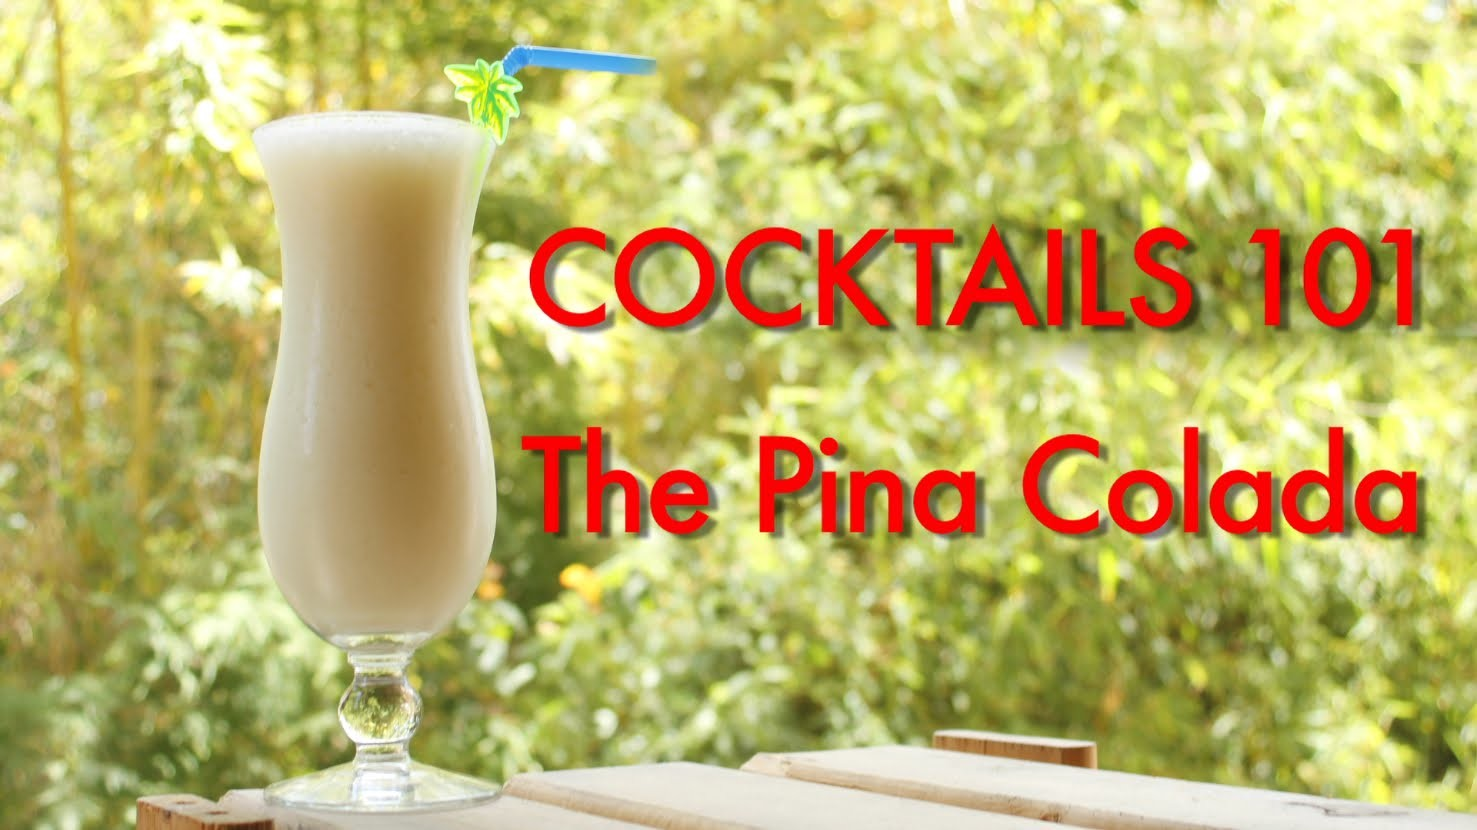 Cocktails 101| How To Make A Pina Colada Tropical Cocktail| Drinks Made Easy